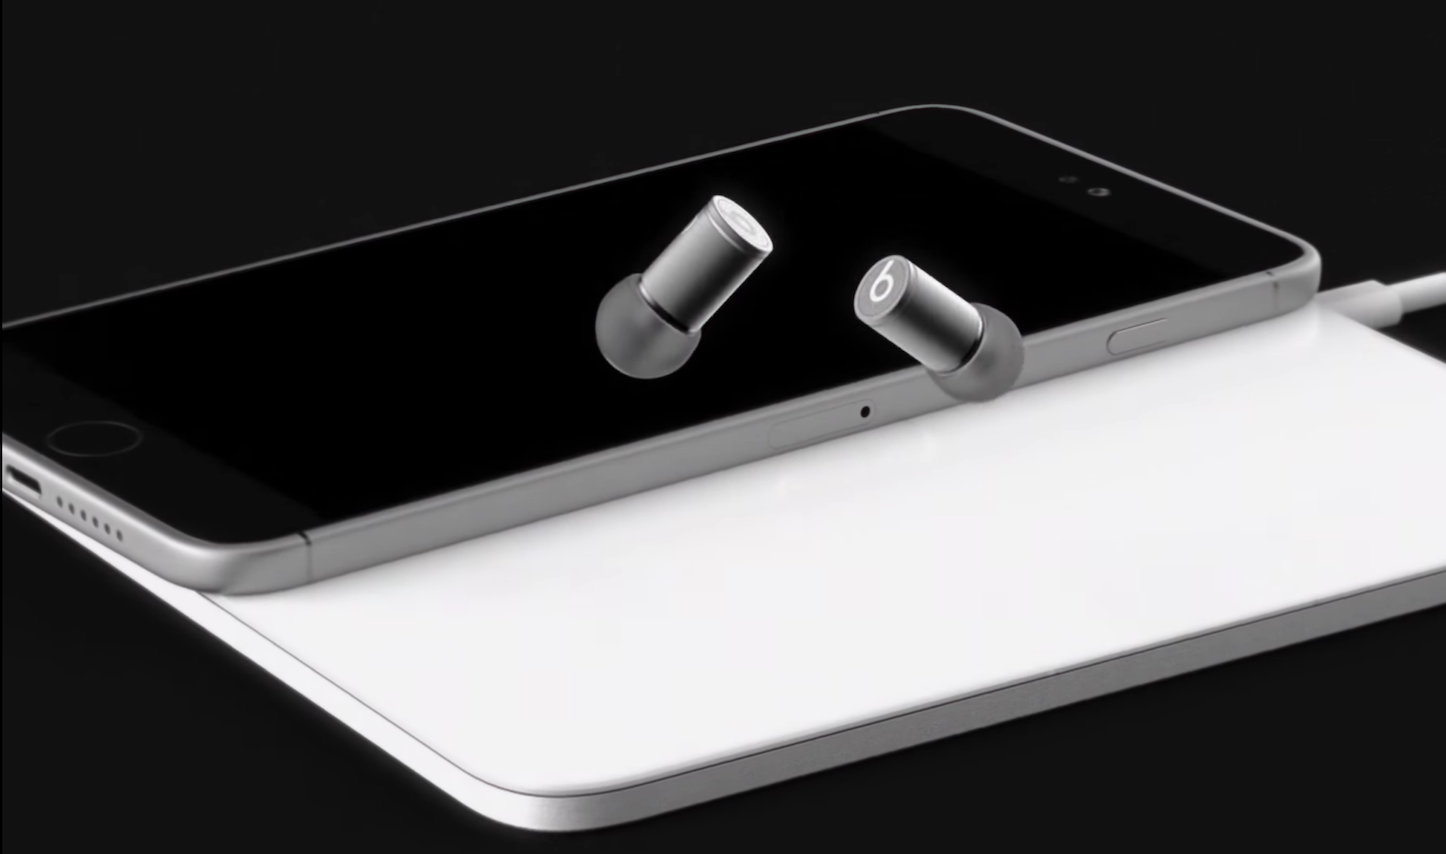 iPhone-7-Trailer-Concept-1.png